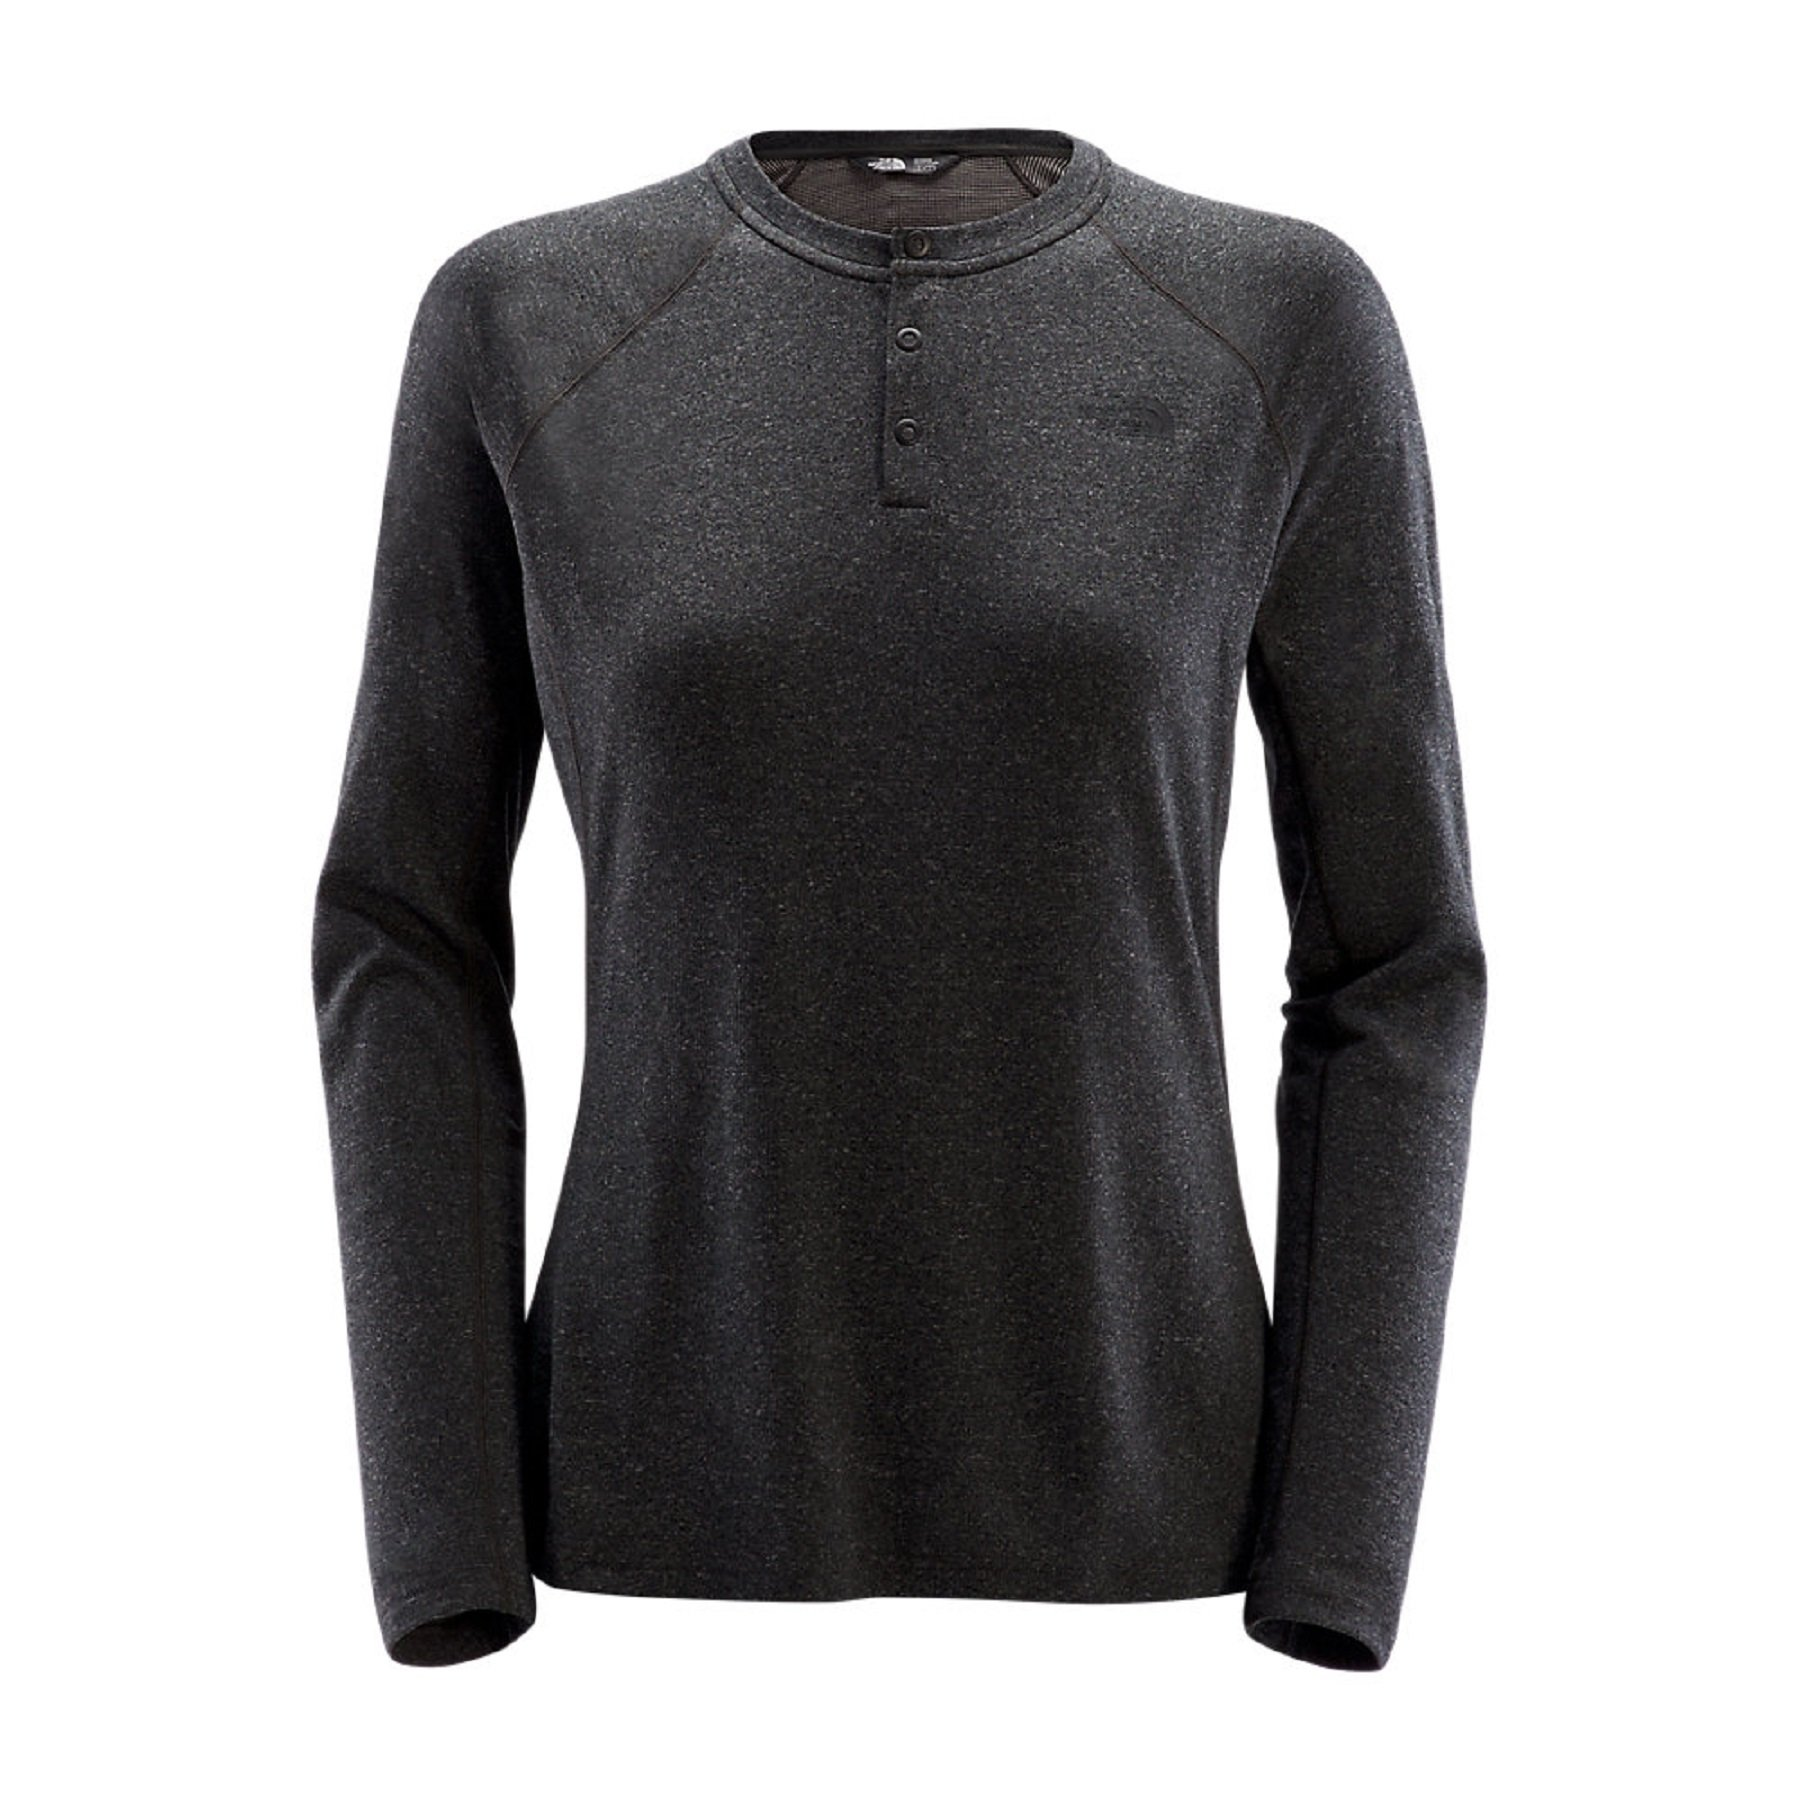 The North Face Women's PROGRESSOR Long-Sleeve First Layer (Medium)